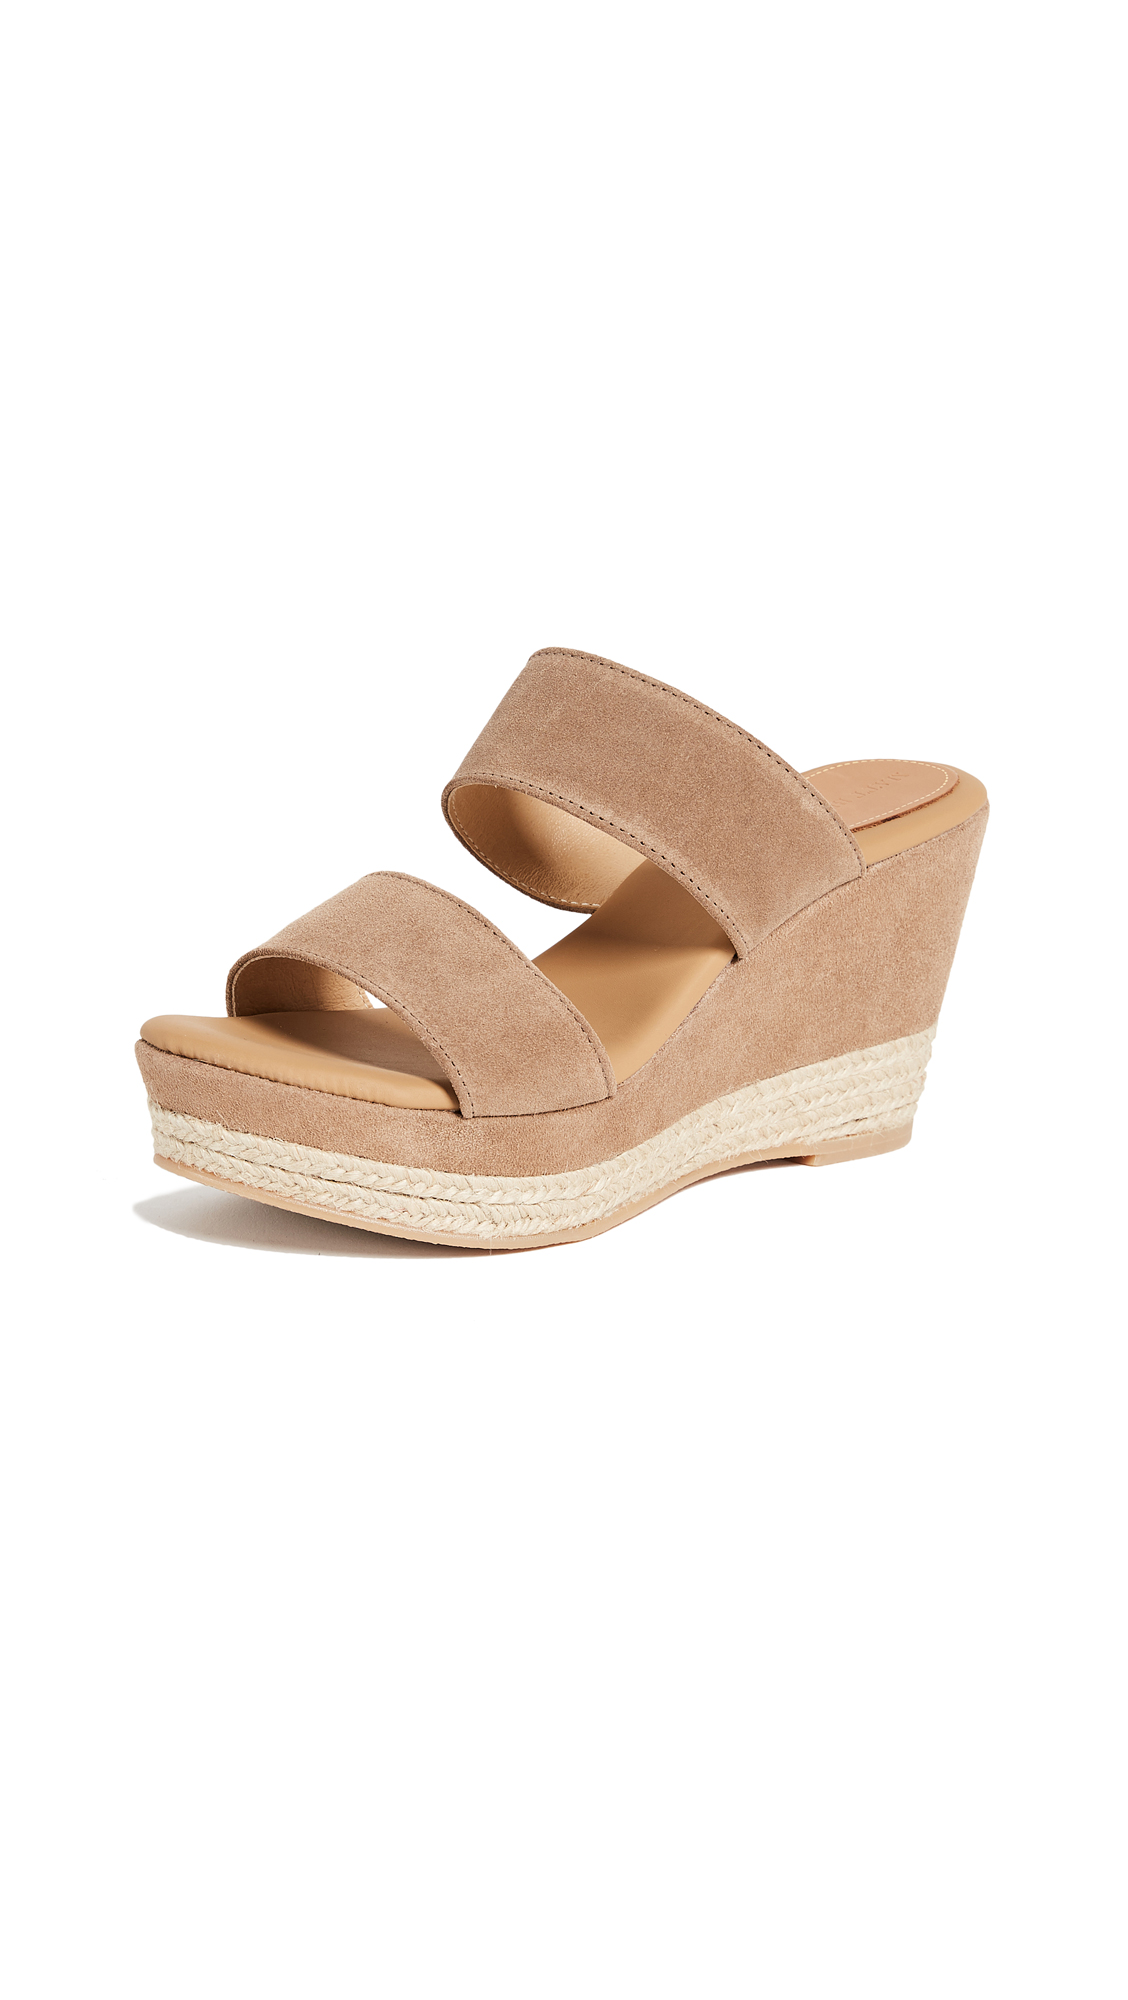 Matt Bernson Icaria Wedges - Tan